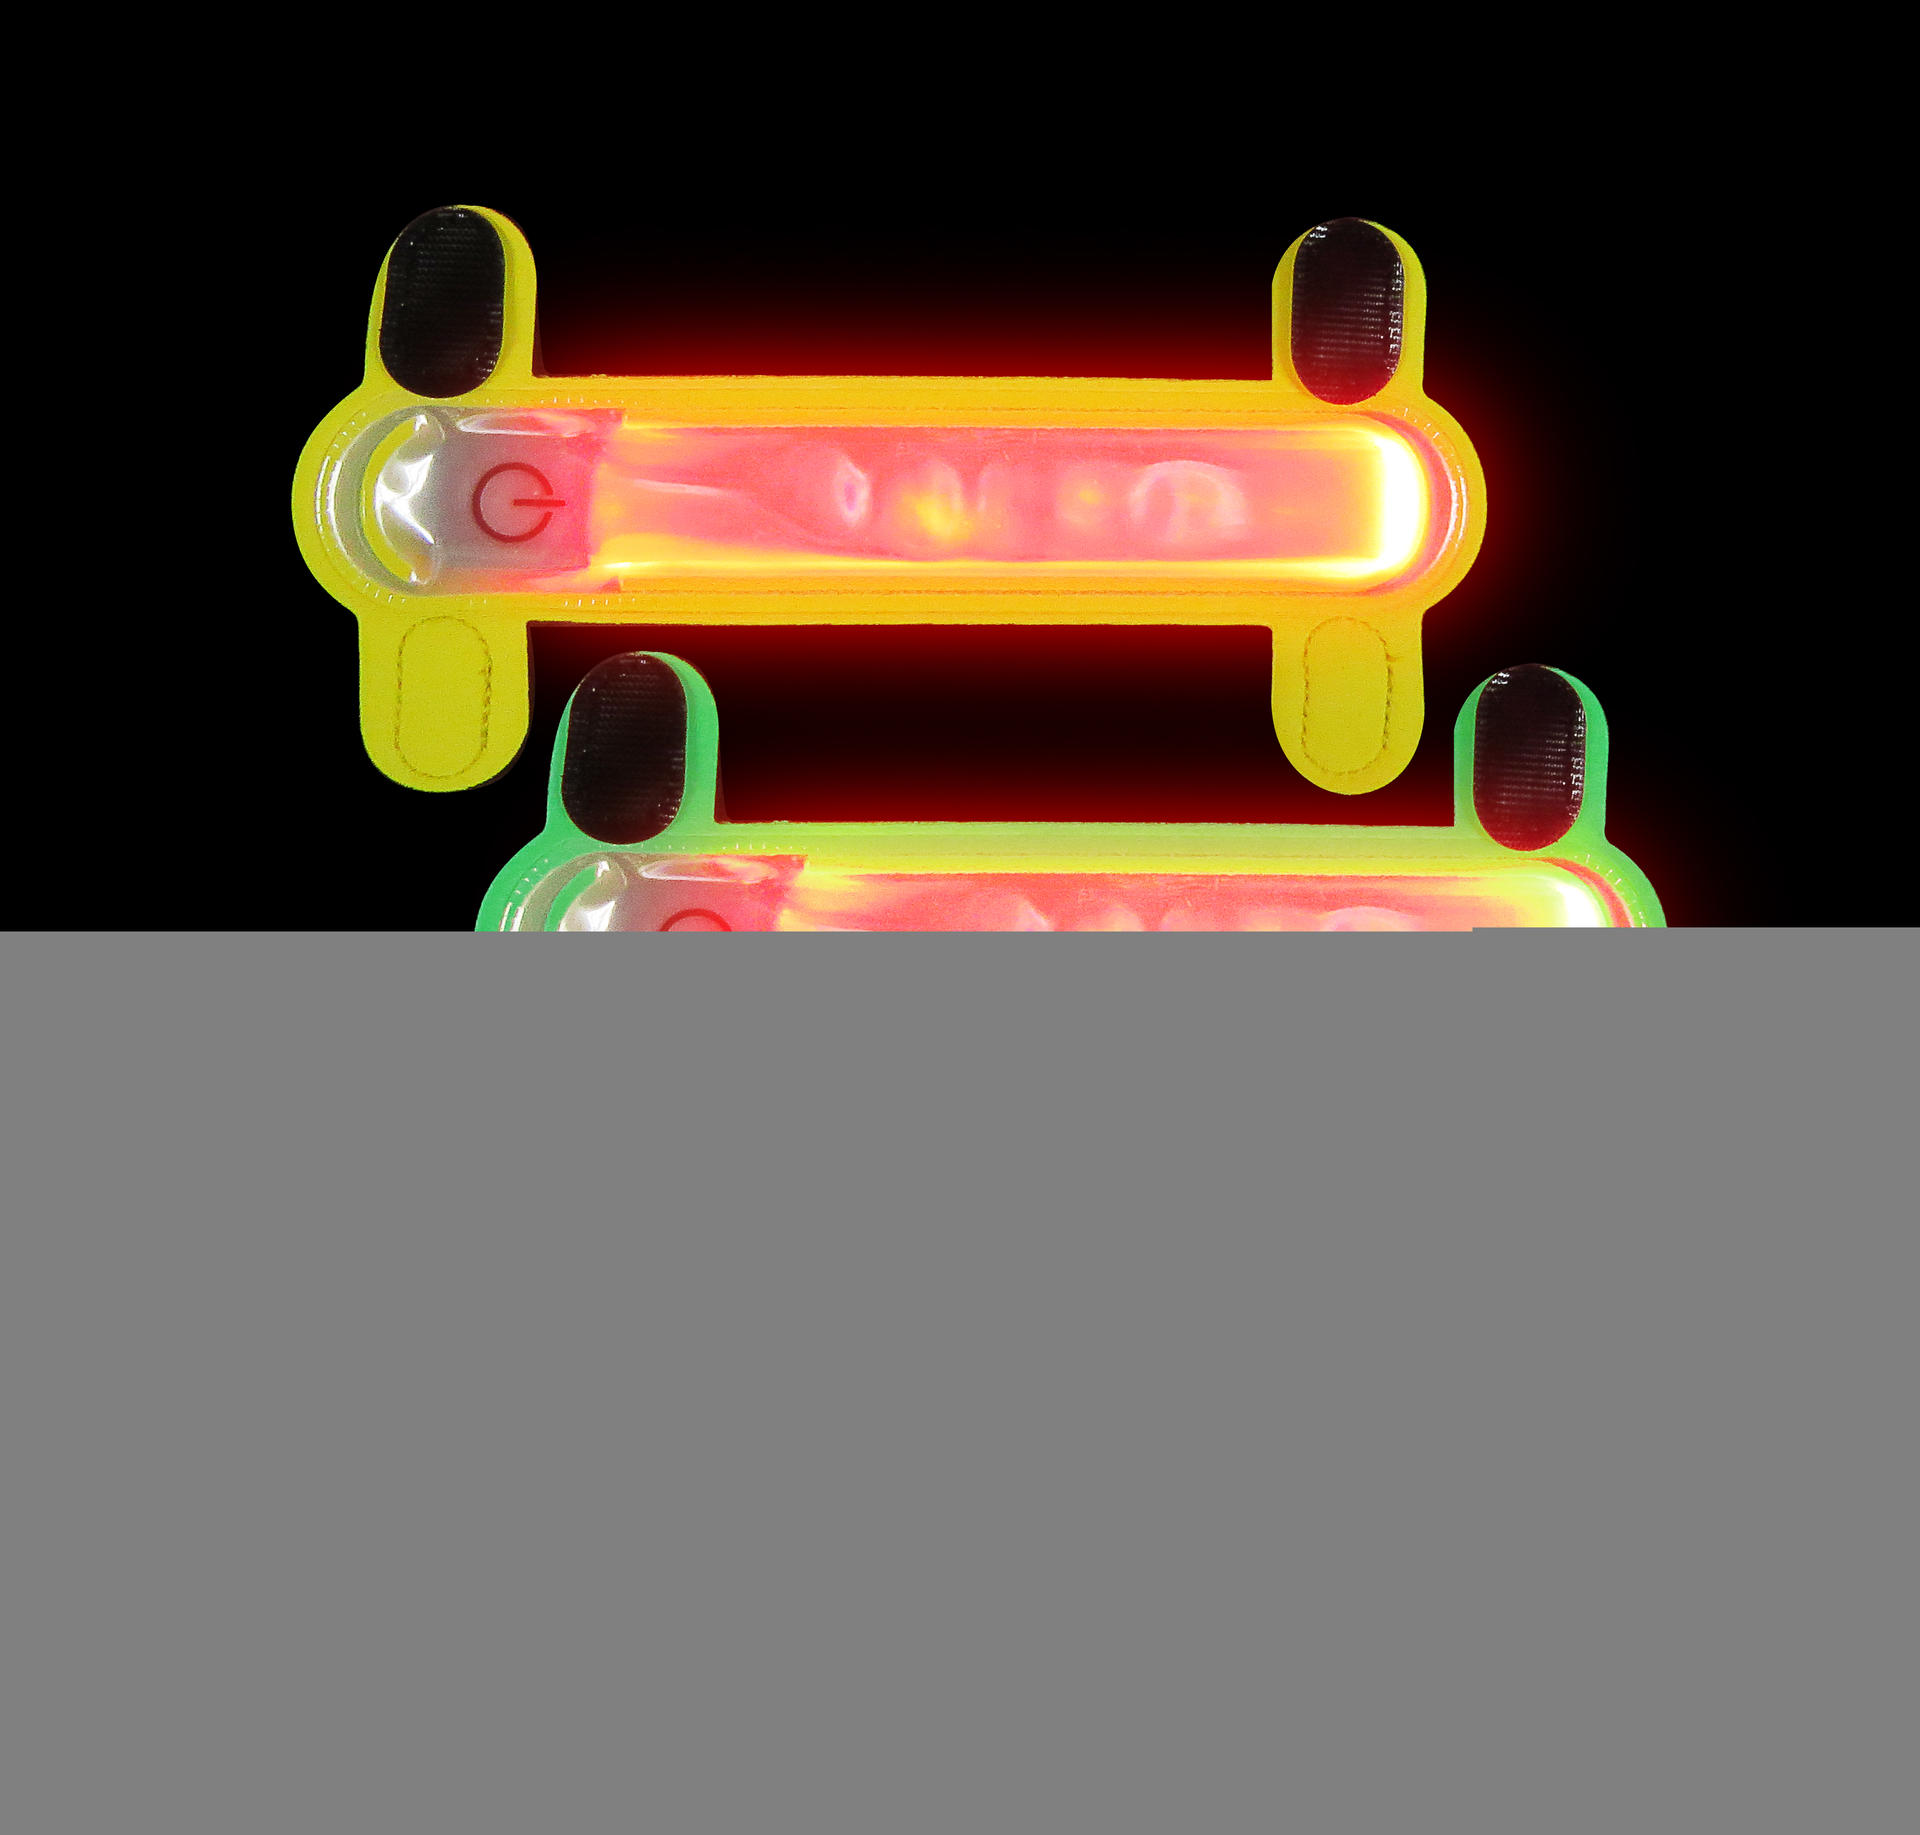 Dog Collar Accessory Led Light Cover lycra Detachable Led Dog Collar Rainproof Light Up Collar Cover for Dogs